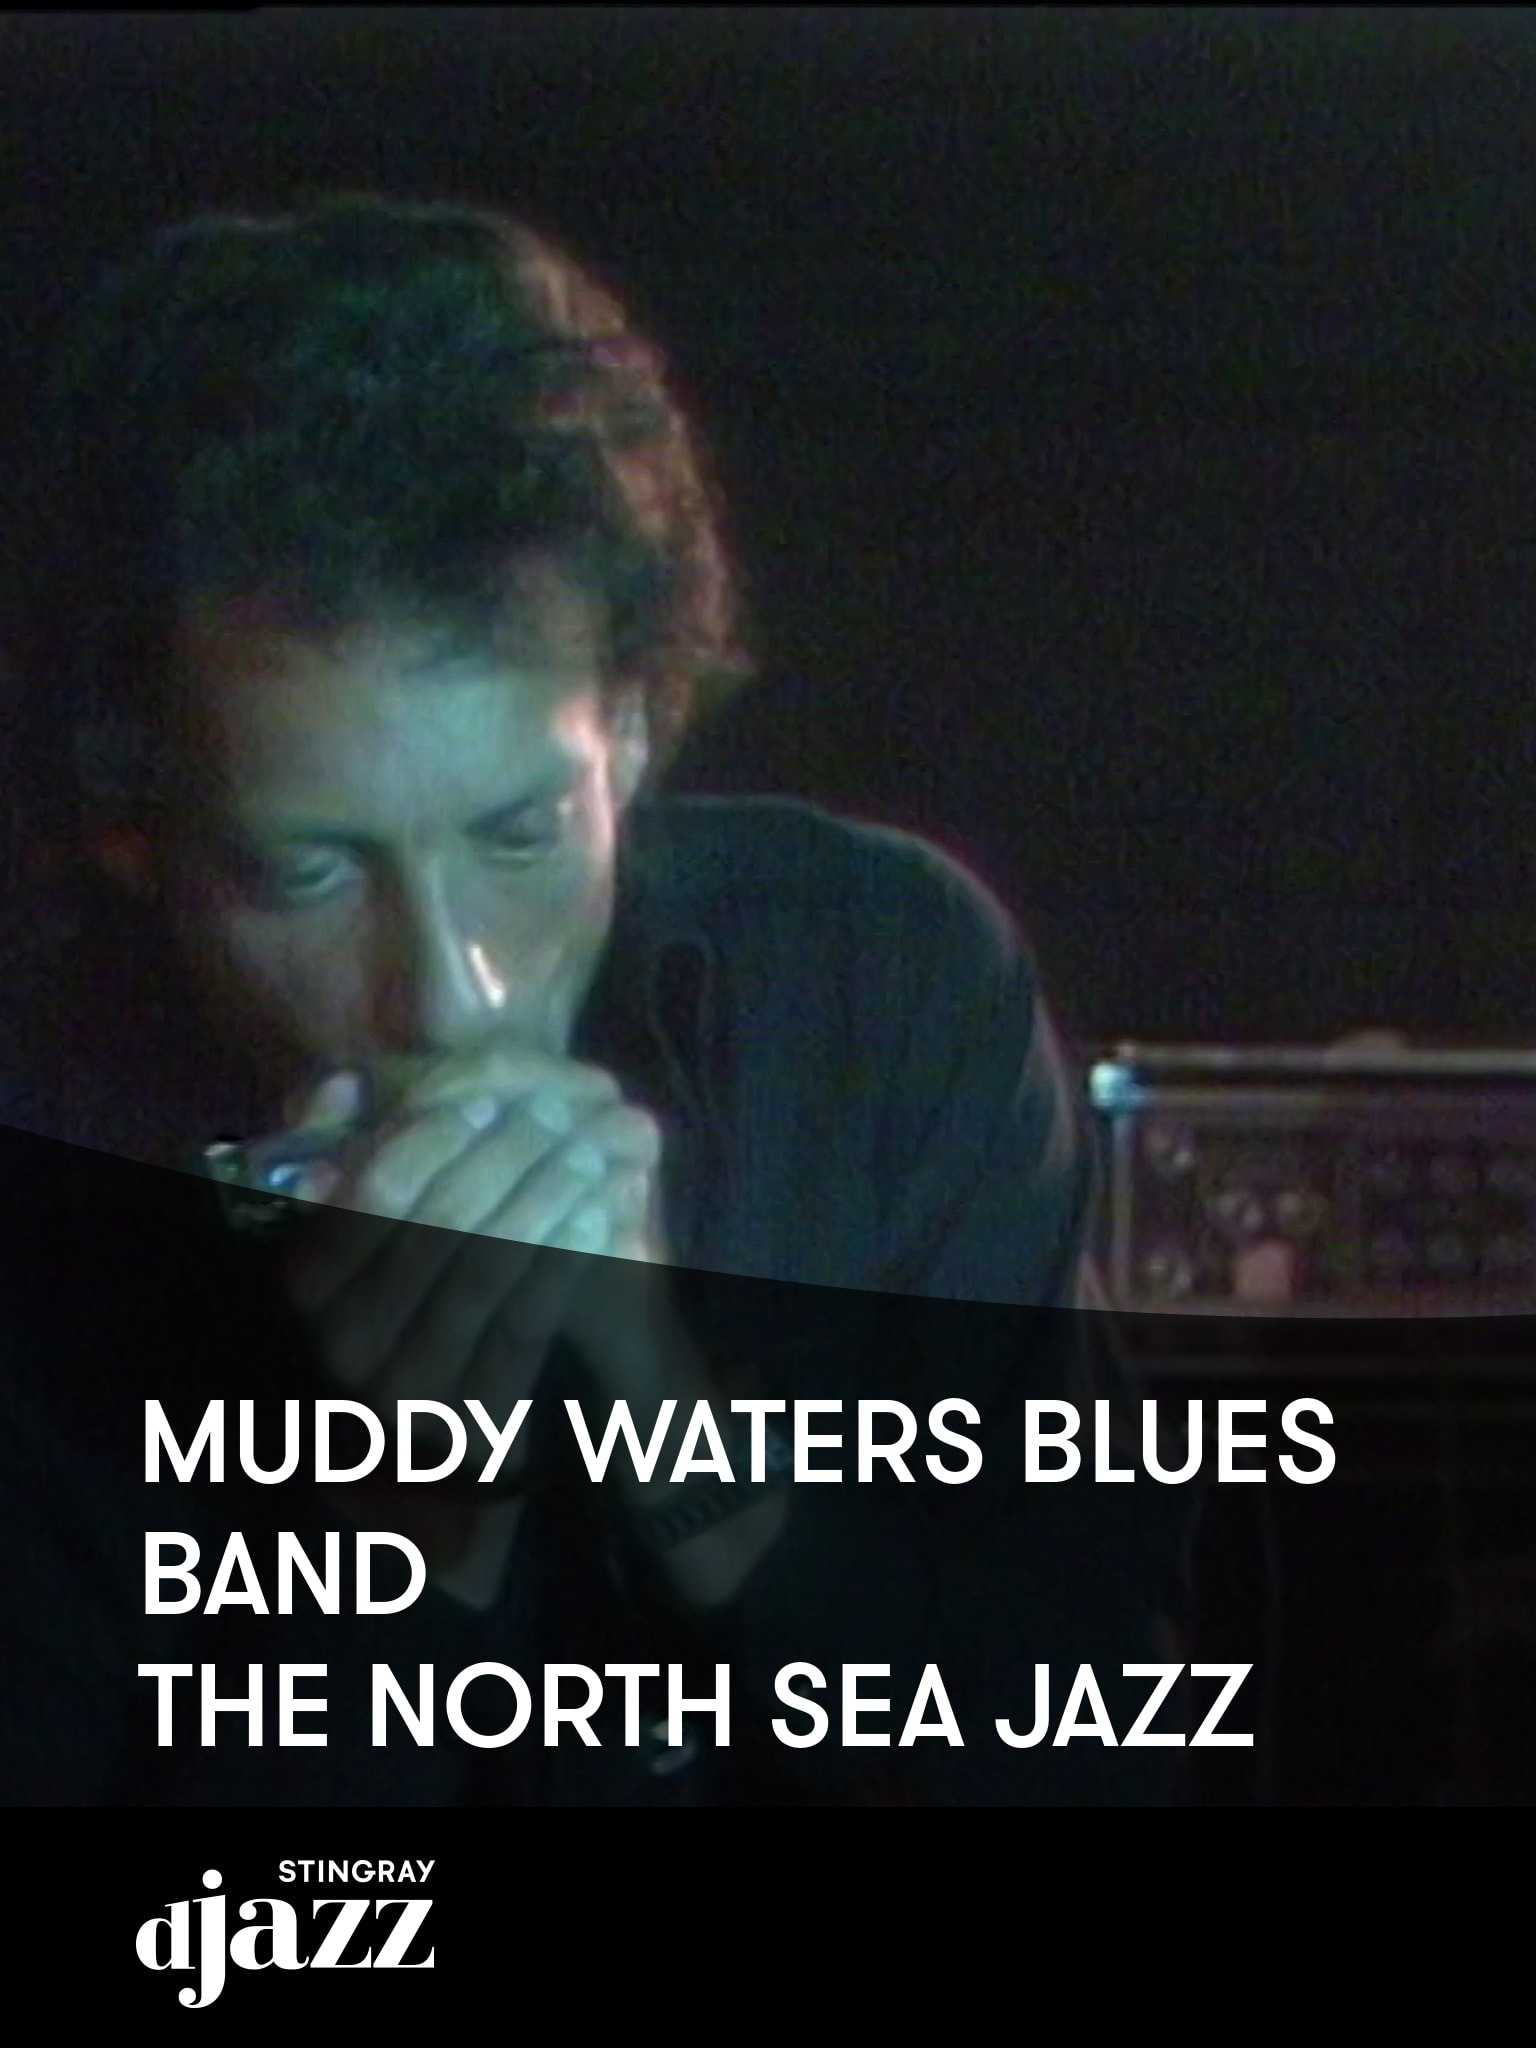 Muddy Waters Blues Band - The North Sea Jazz